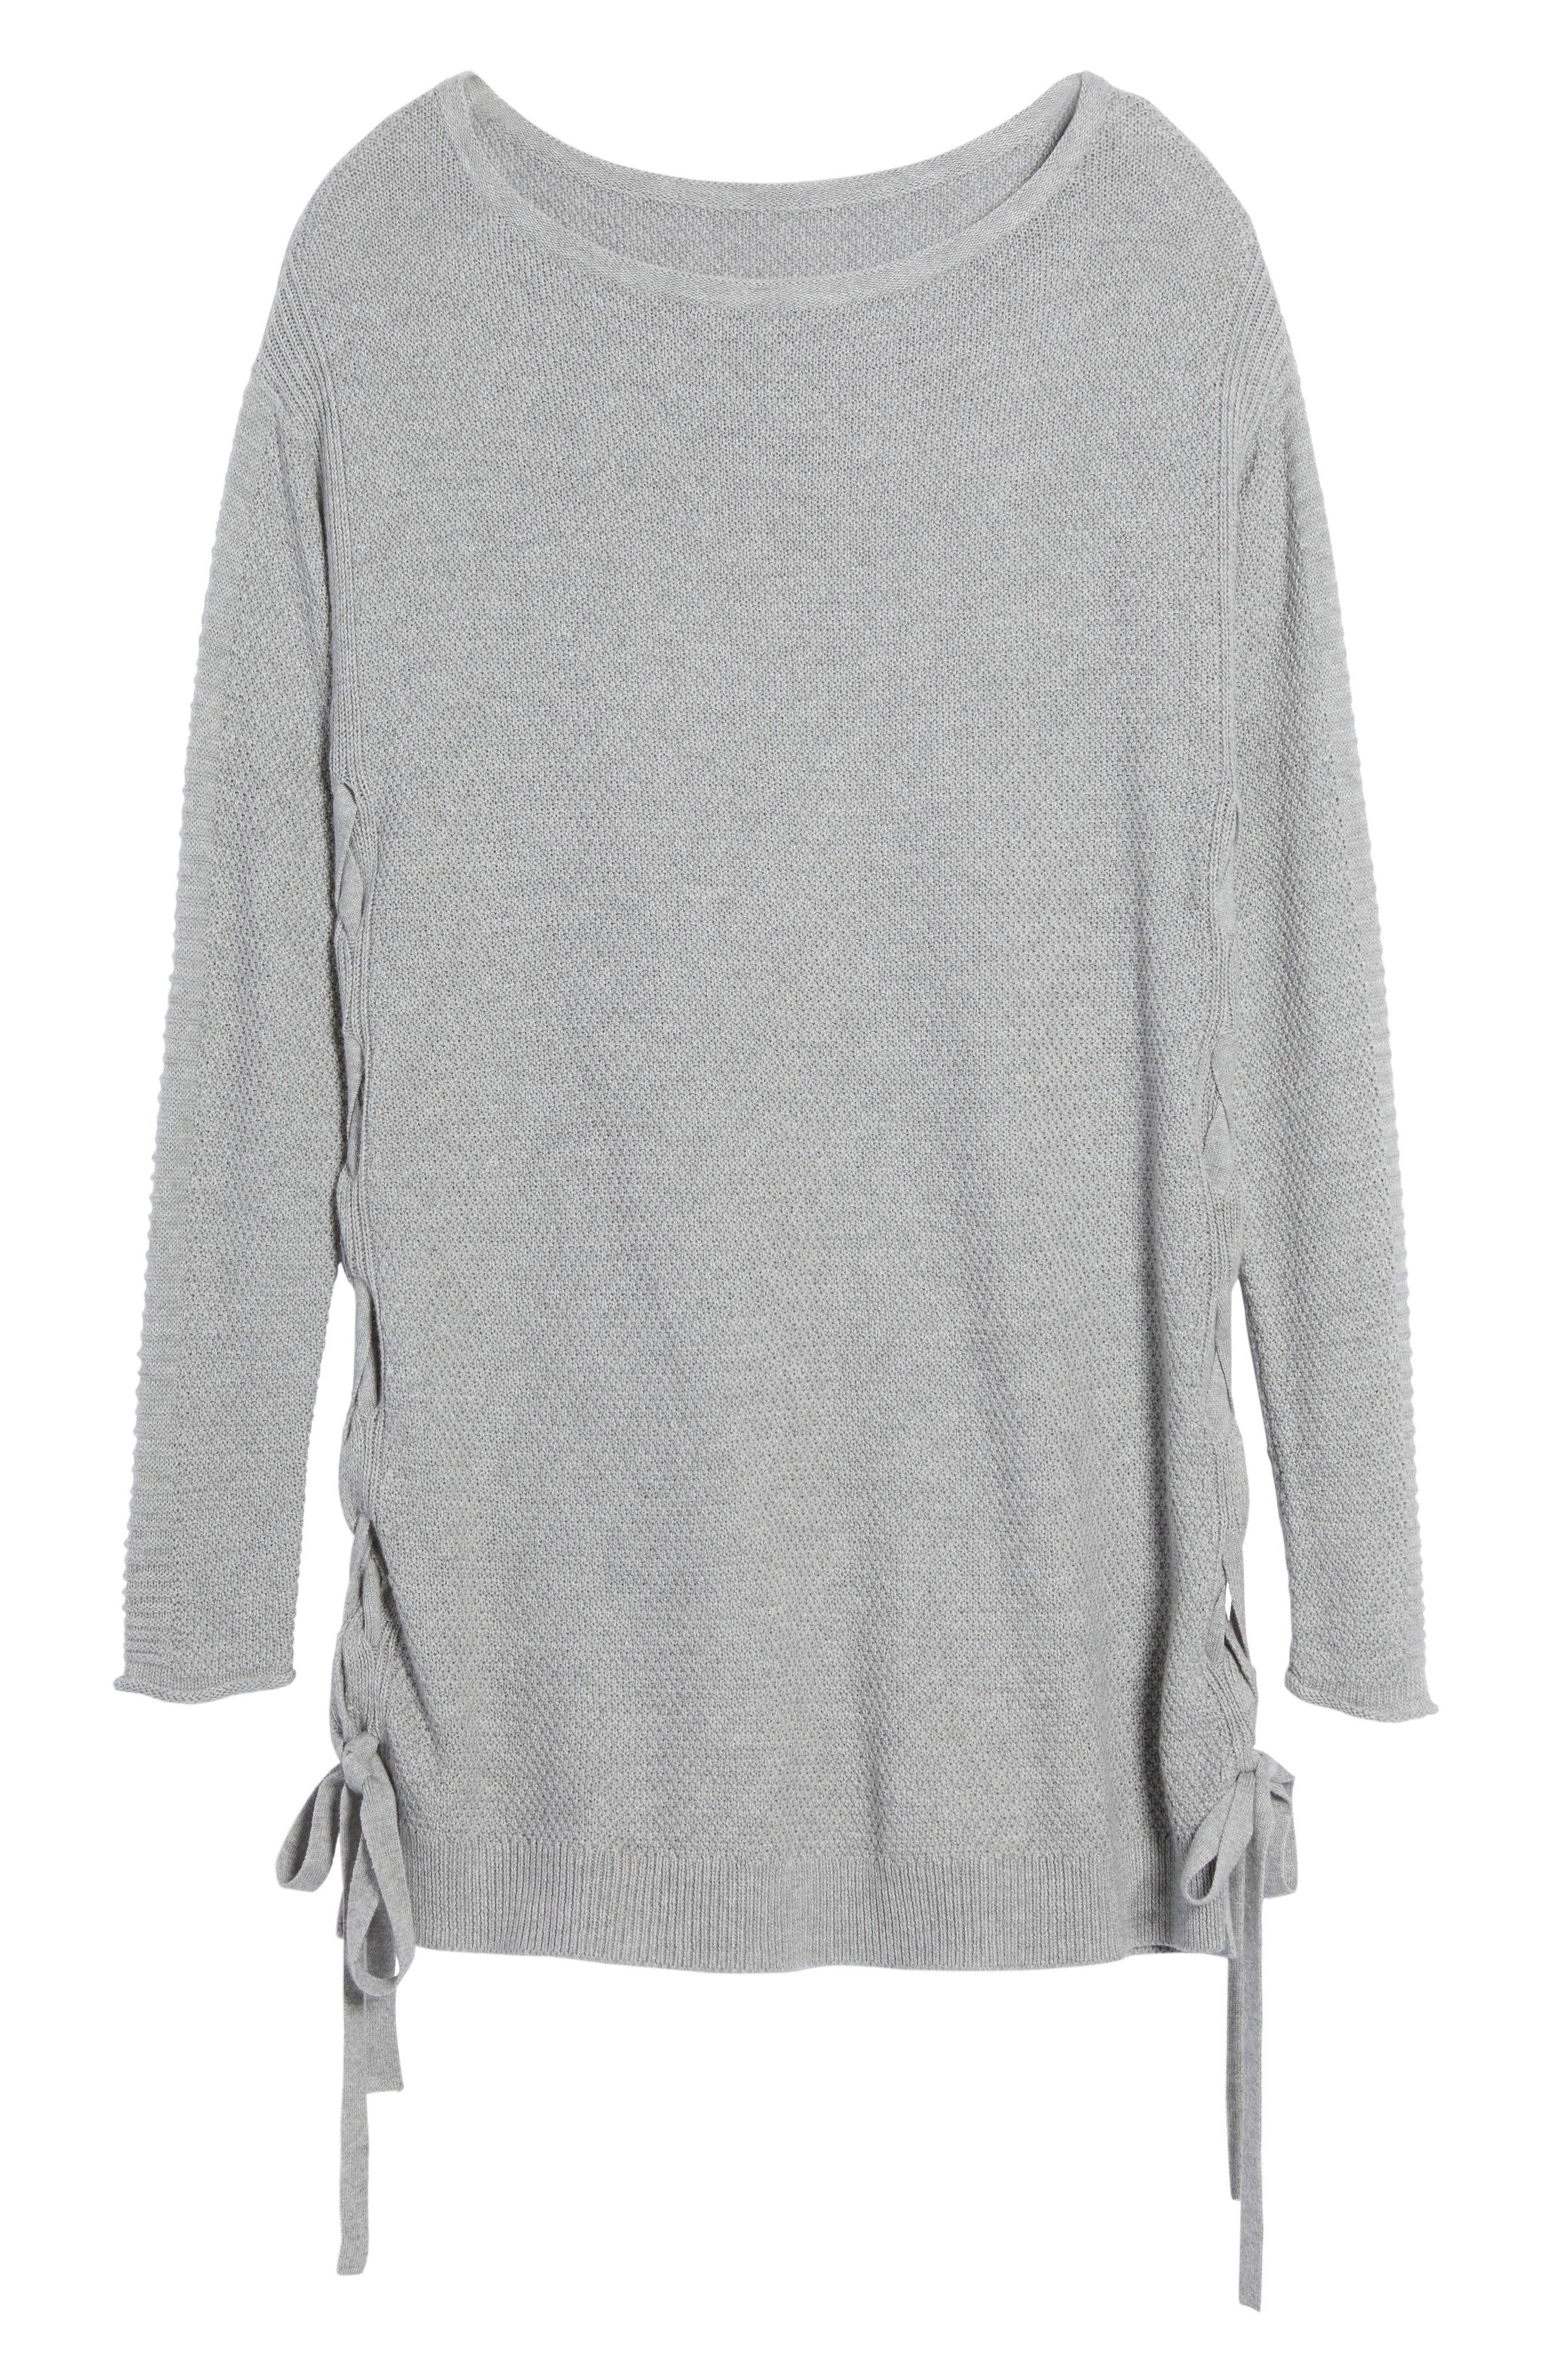 Side Tie Seed Stitch Tunic Top,                             Alternate thumbnail 3, color,                             Heather Grey